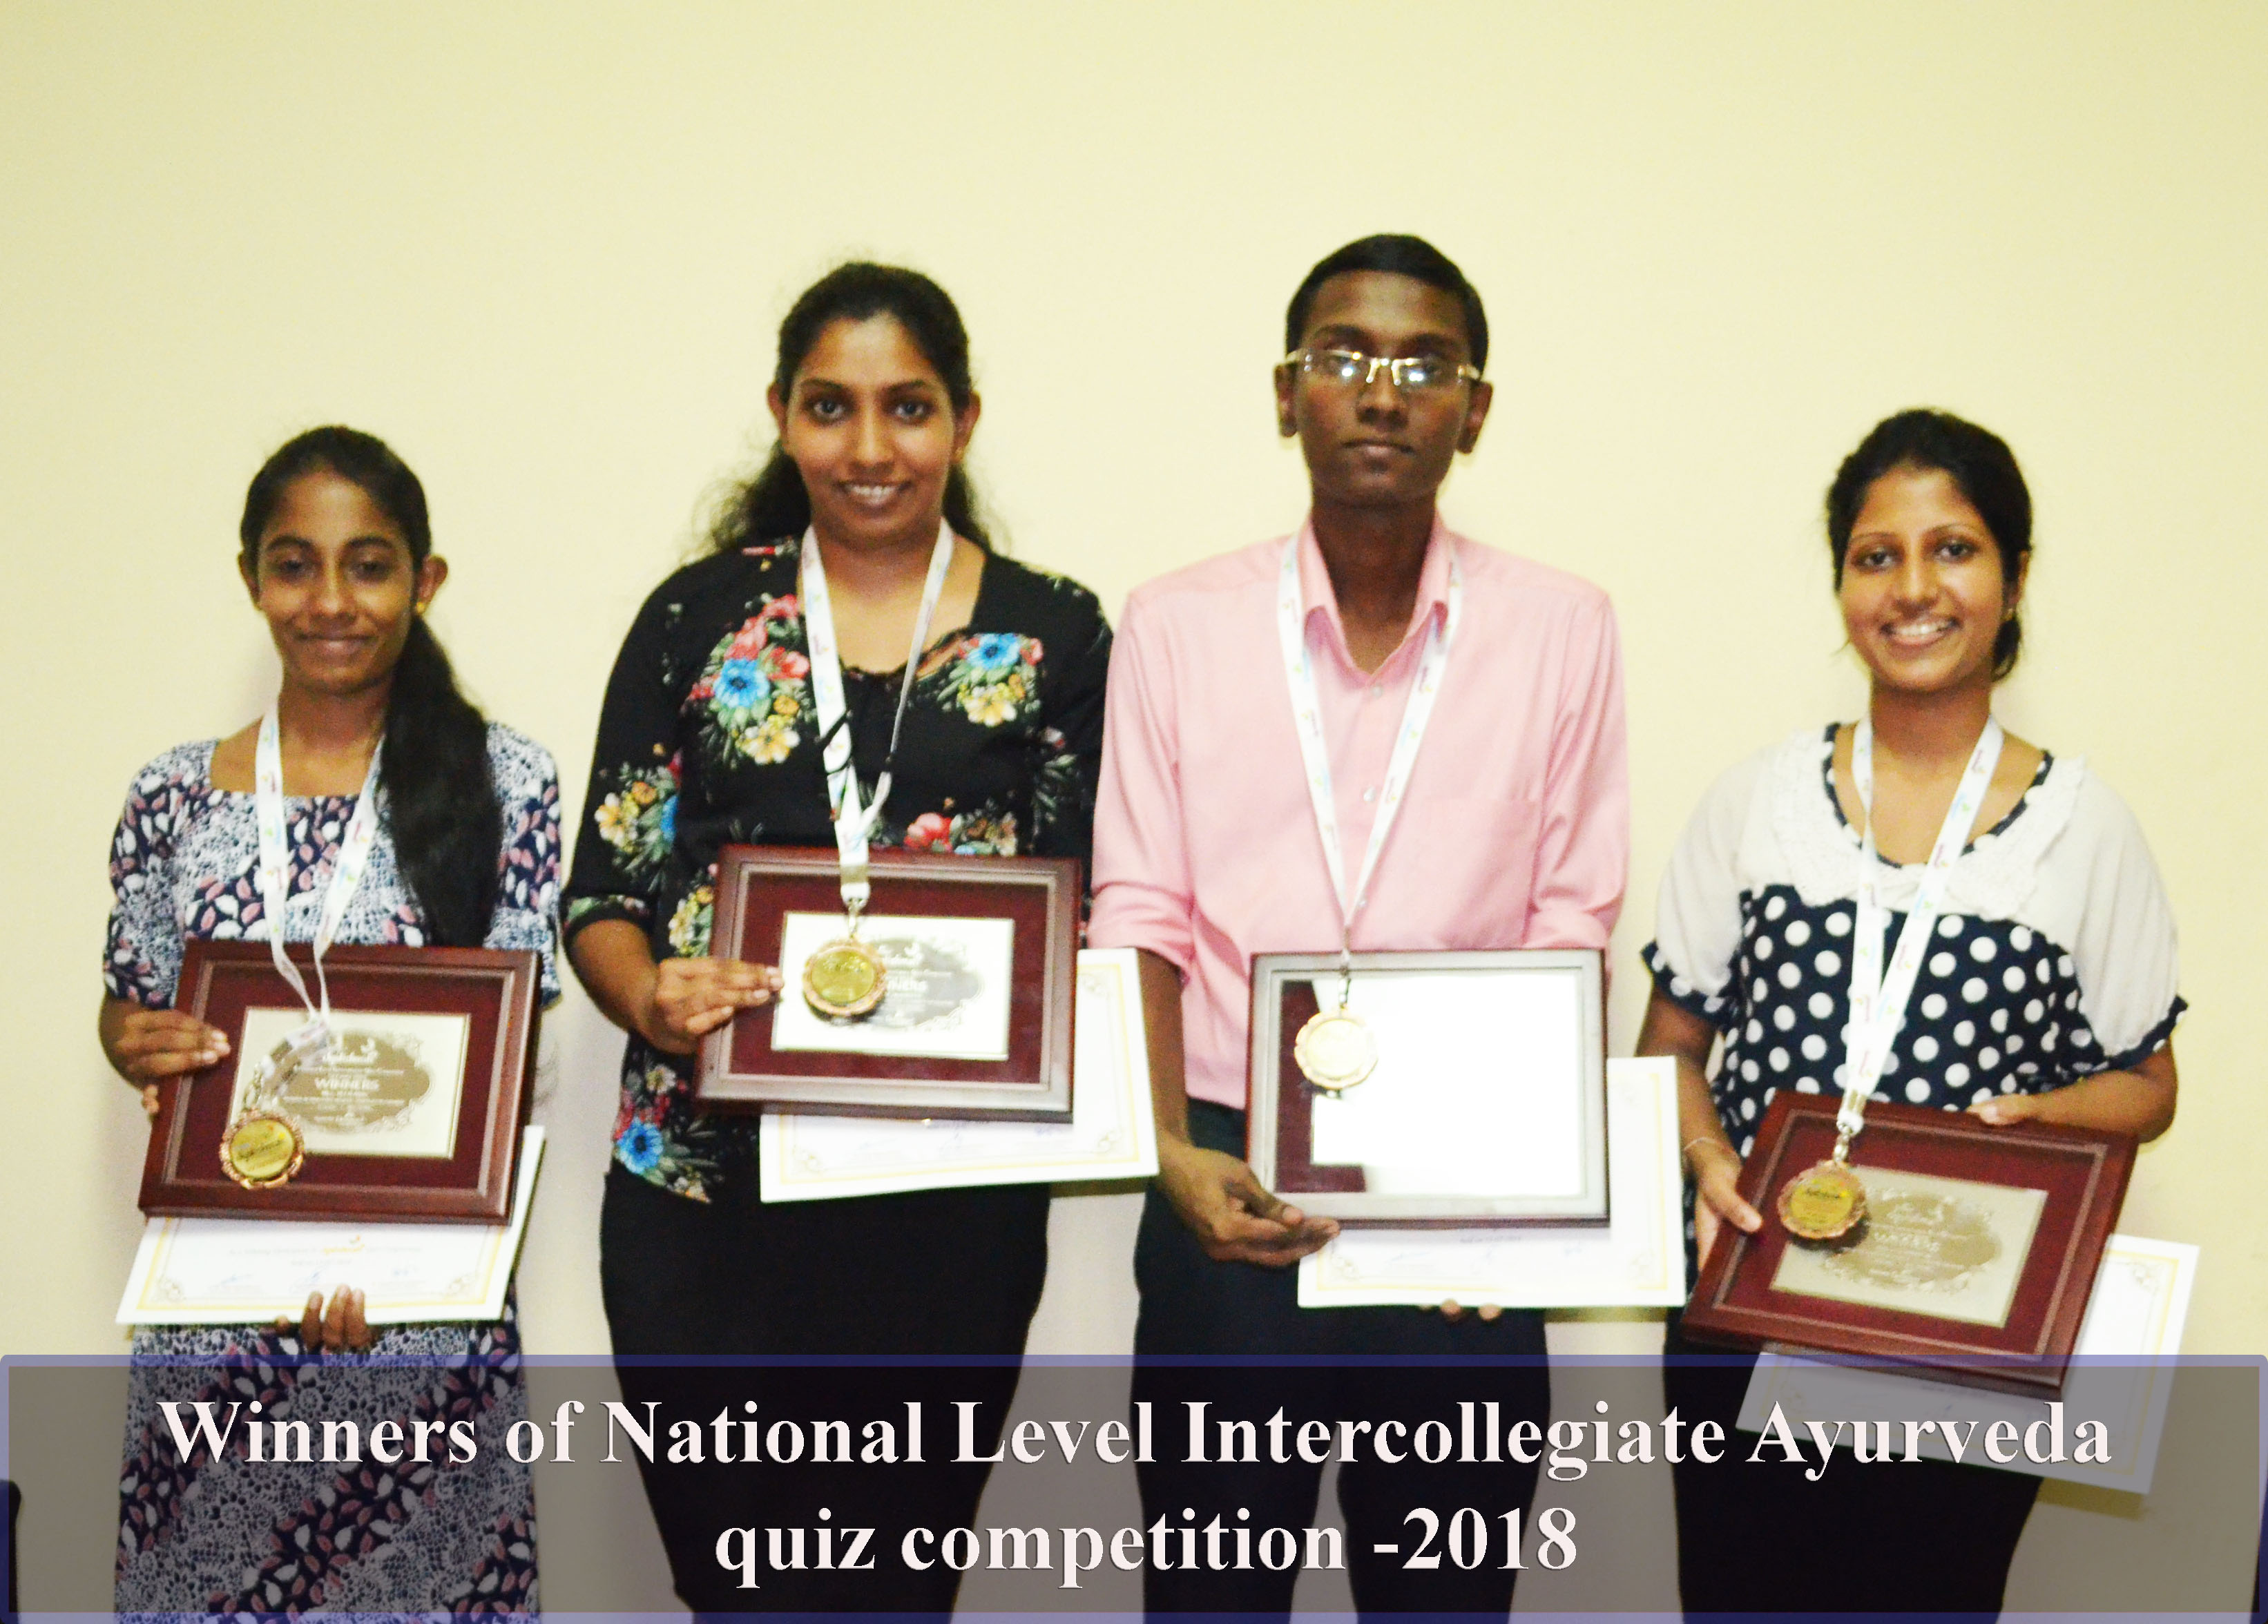 Winners of National Level Intercollegiate Ayurveda quiz competition -2018